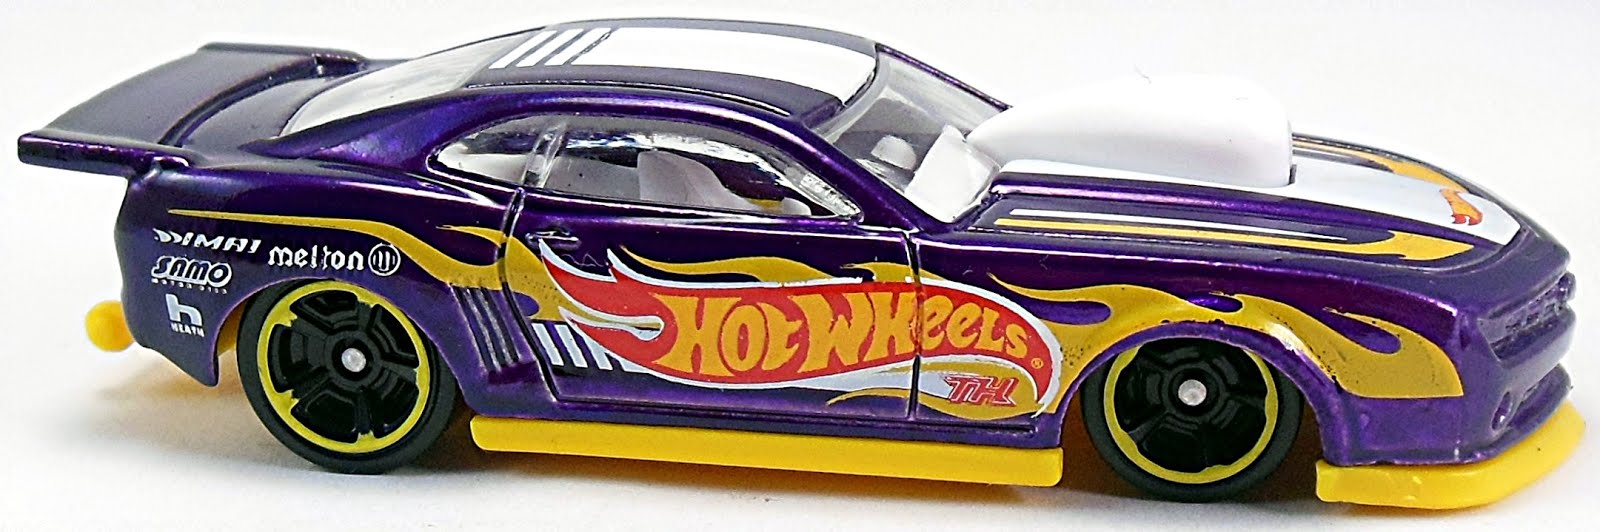 hot wheels pro stock camaro super treasure hunts